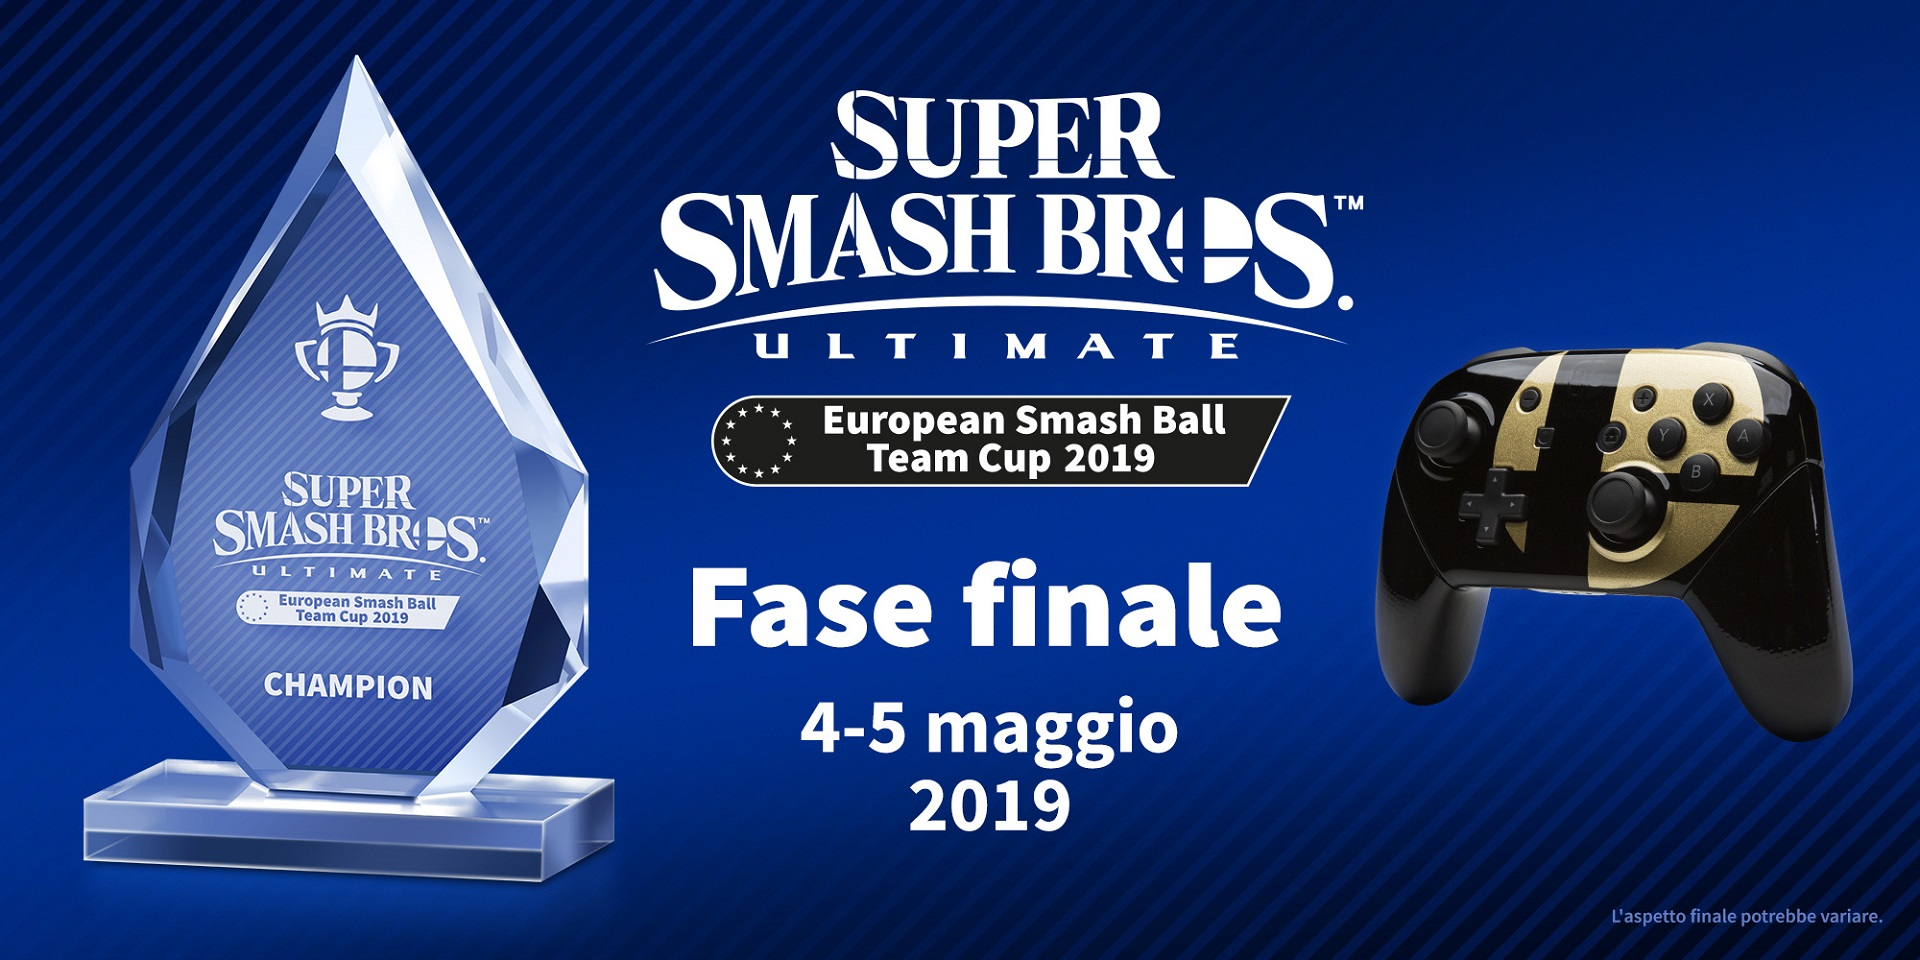 Super Smash Bros Ultimate European Smash Ball Team Cup 2019